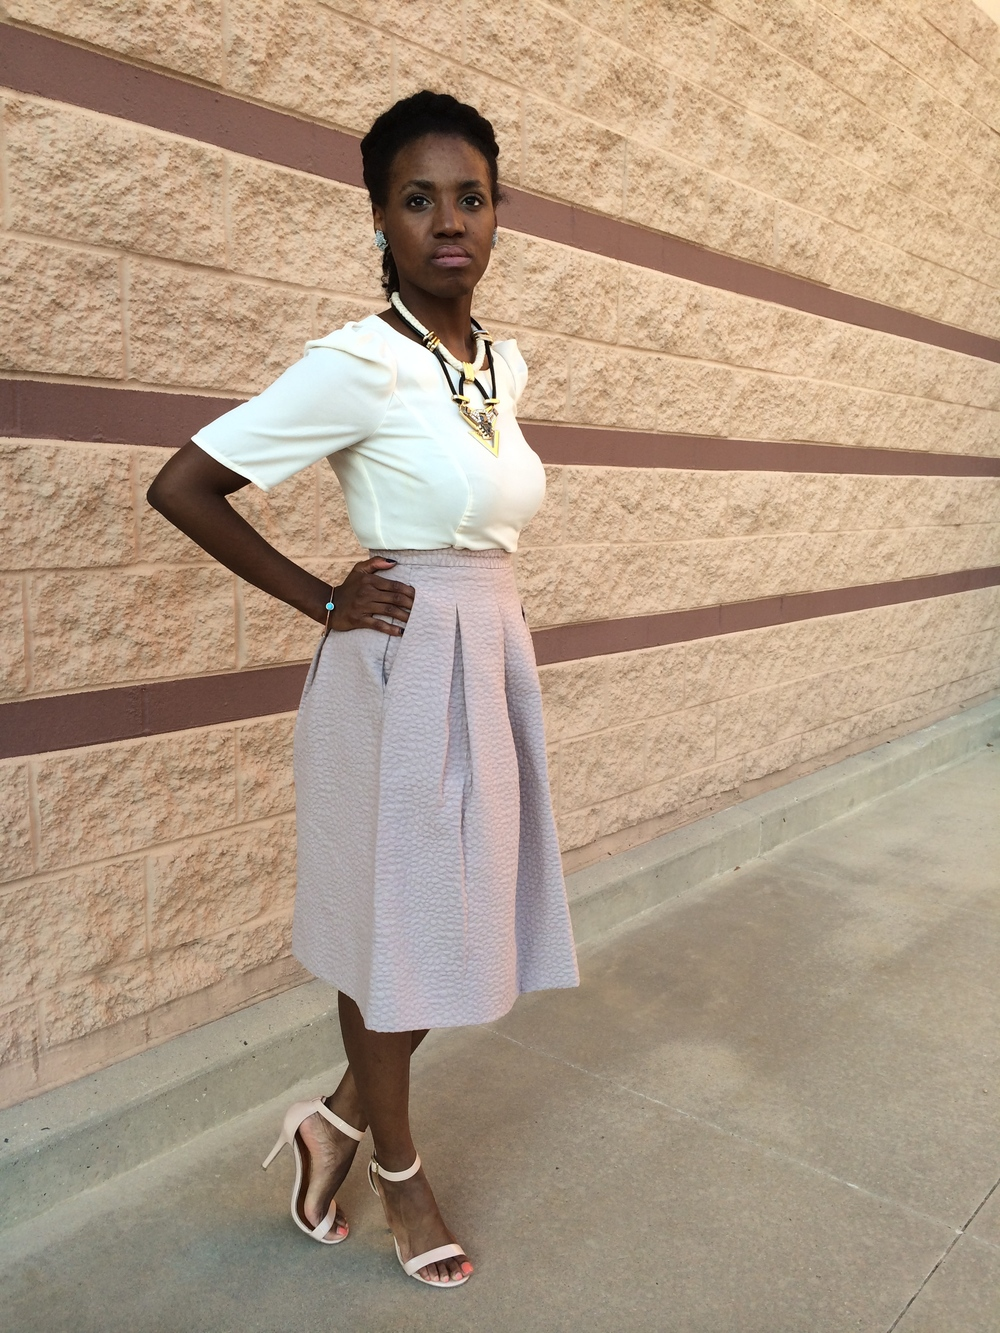 outfit deets: shirt - Forever 21; skirt- H&M; shoes- Steve Madden; necklace- TOPSHOP; earrings- vintage; bracelet- thrifted